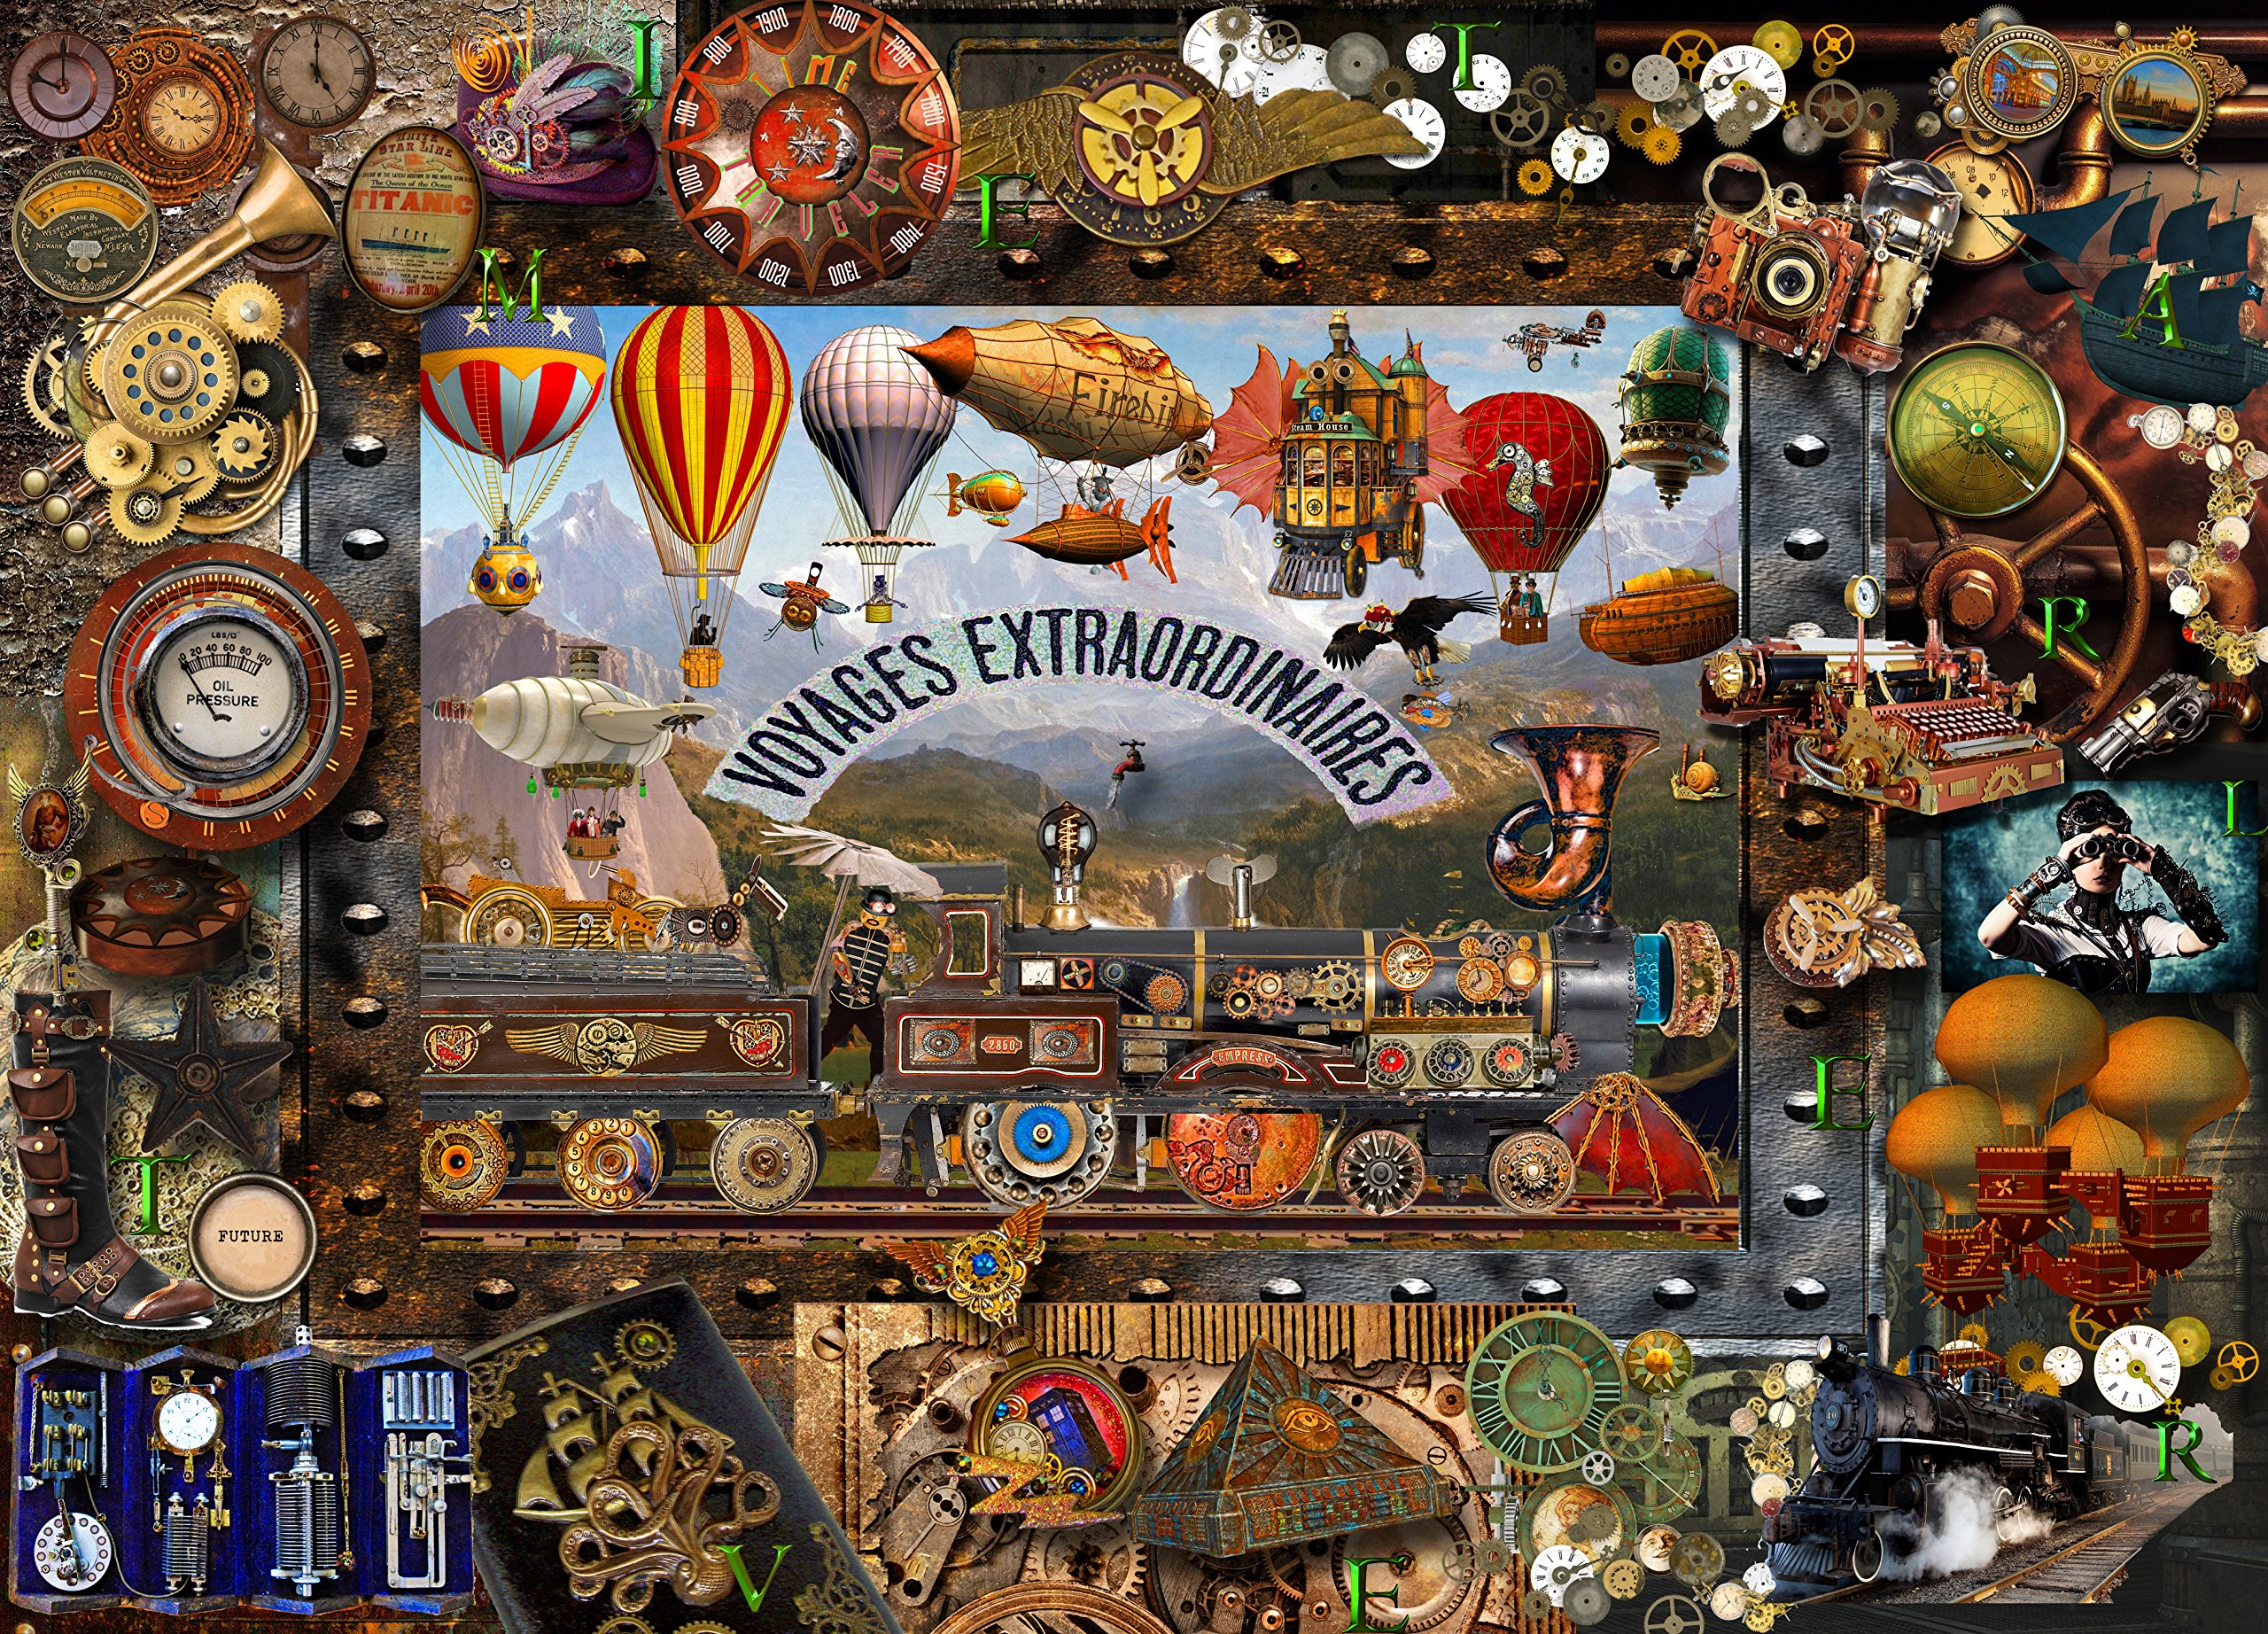 Collage Jigsaw Puzzles For Adults